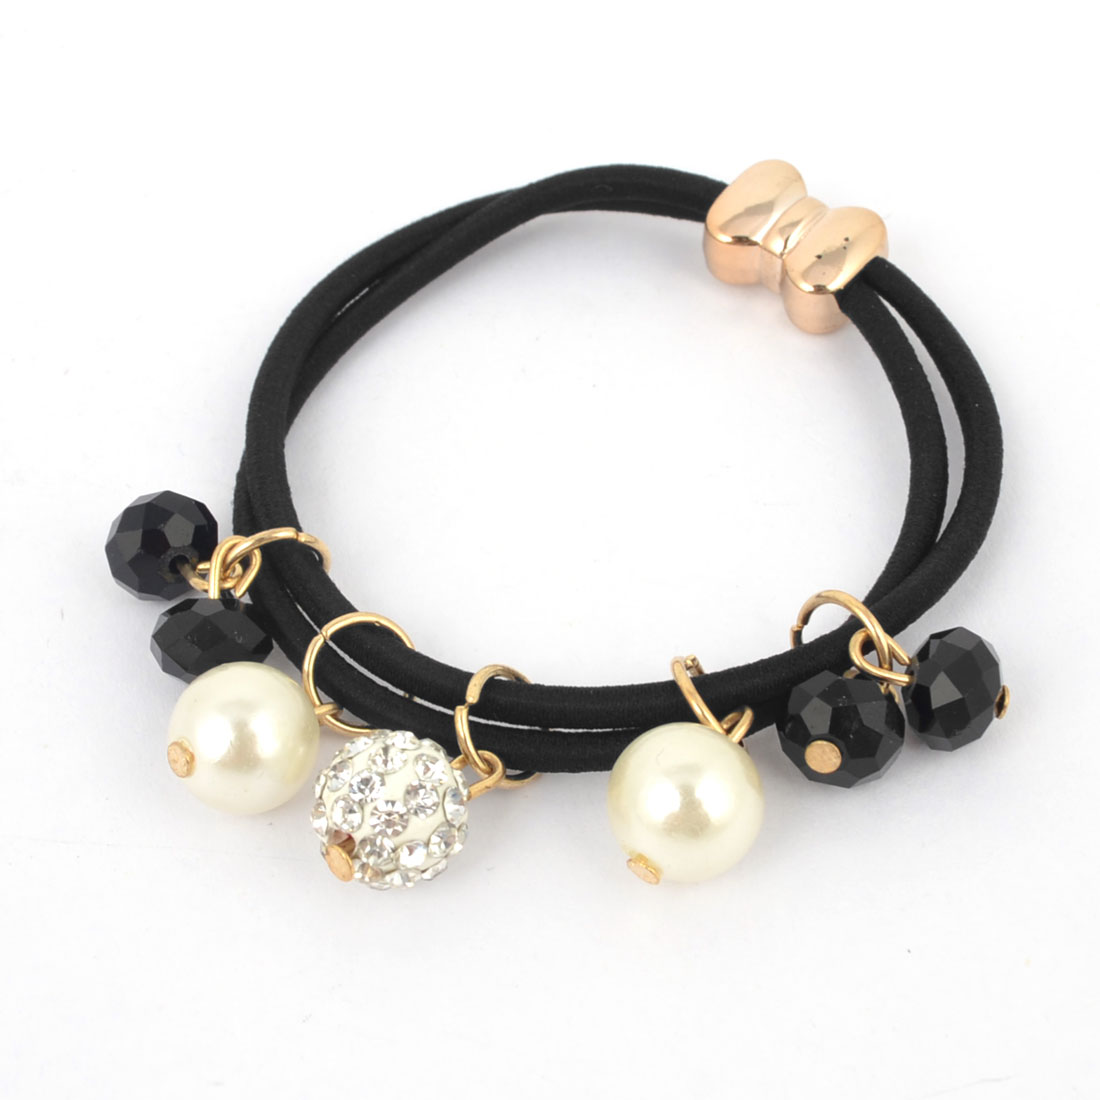 Lady Imitation Pearls Rhinestones Ornament Stretchy Elastic Rubber Hair Tie Ponytail Holder Black